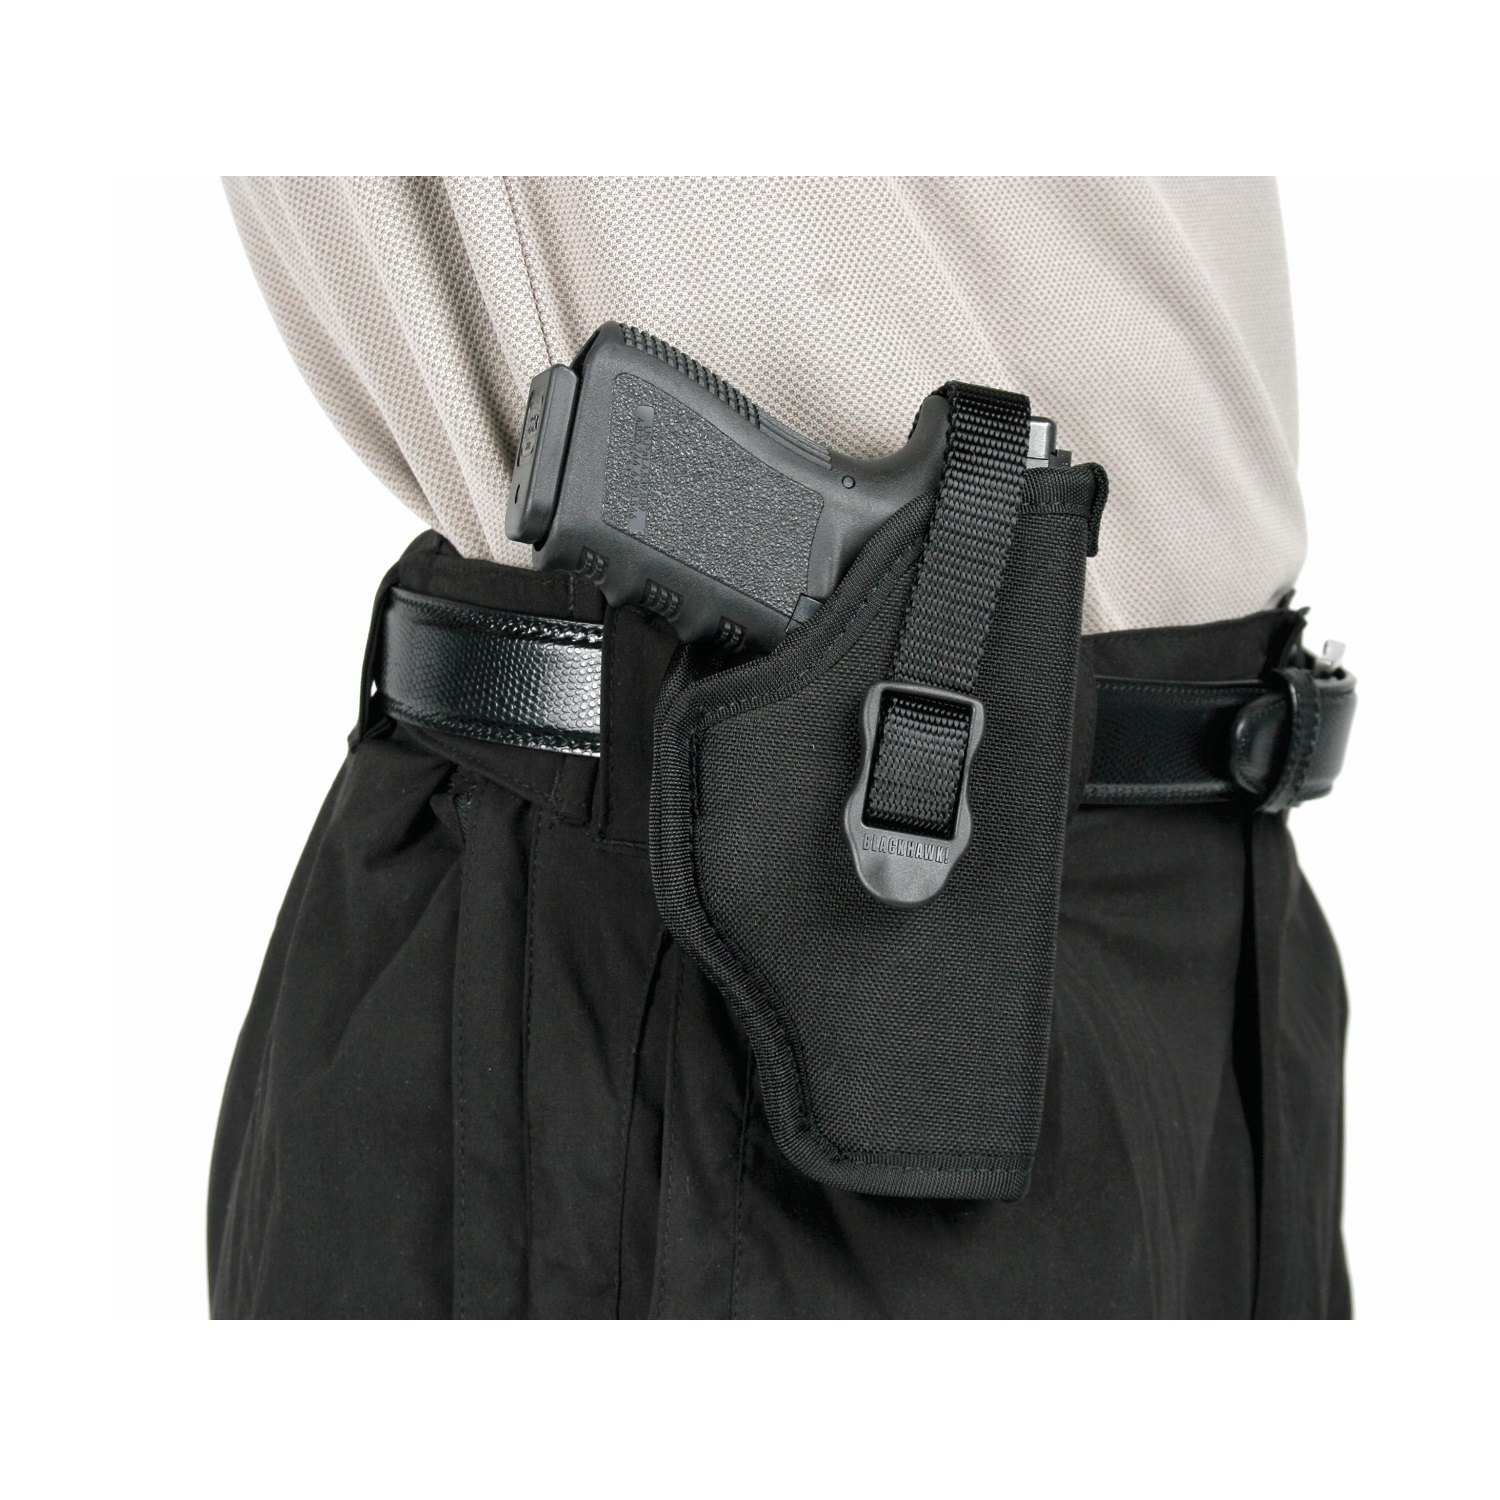 "BLACKHAWK HIP HOLSTER 4 4.5-5"" BARREL LARGE AUTO, OPEN END 1000 DENIER CORDURA NYLON BLACK"